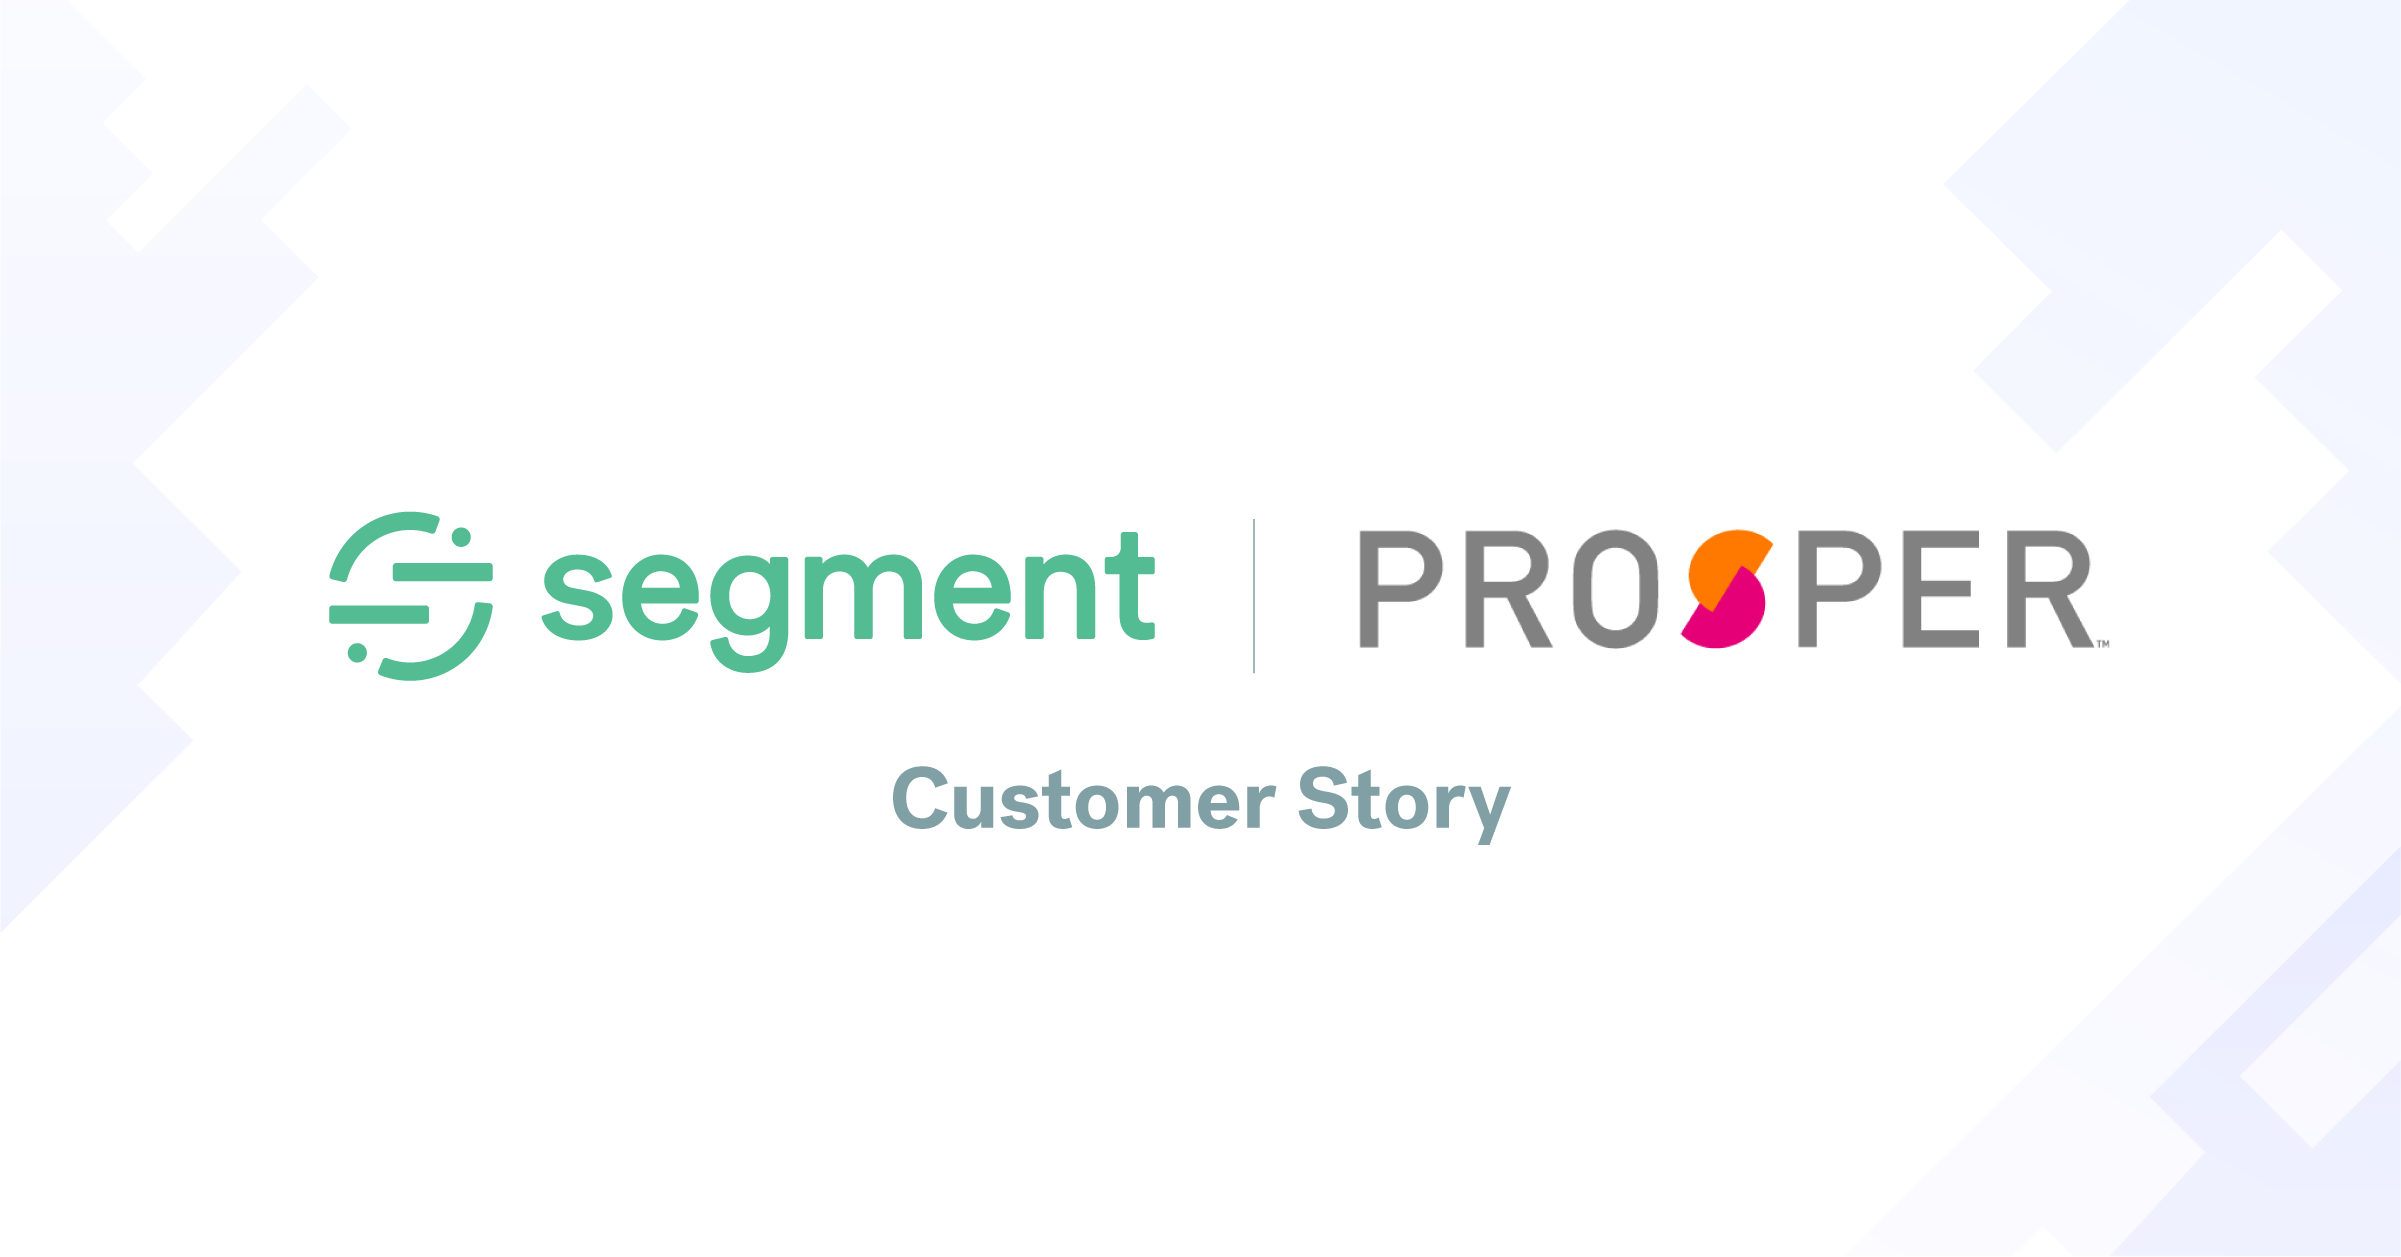 How Prosper reduced analytics installation from months to minutes